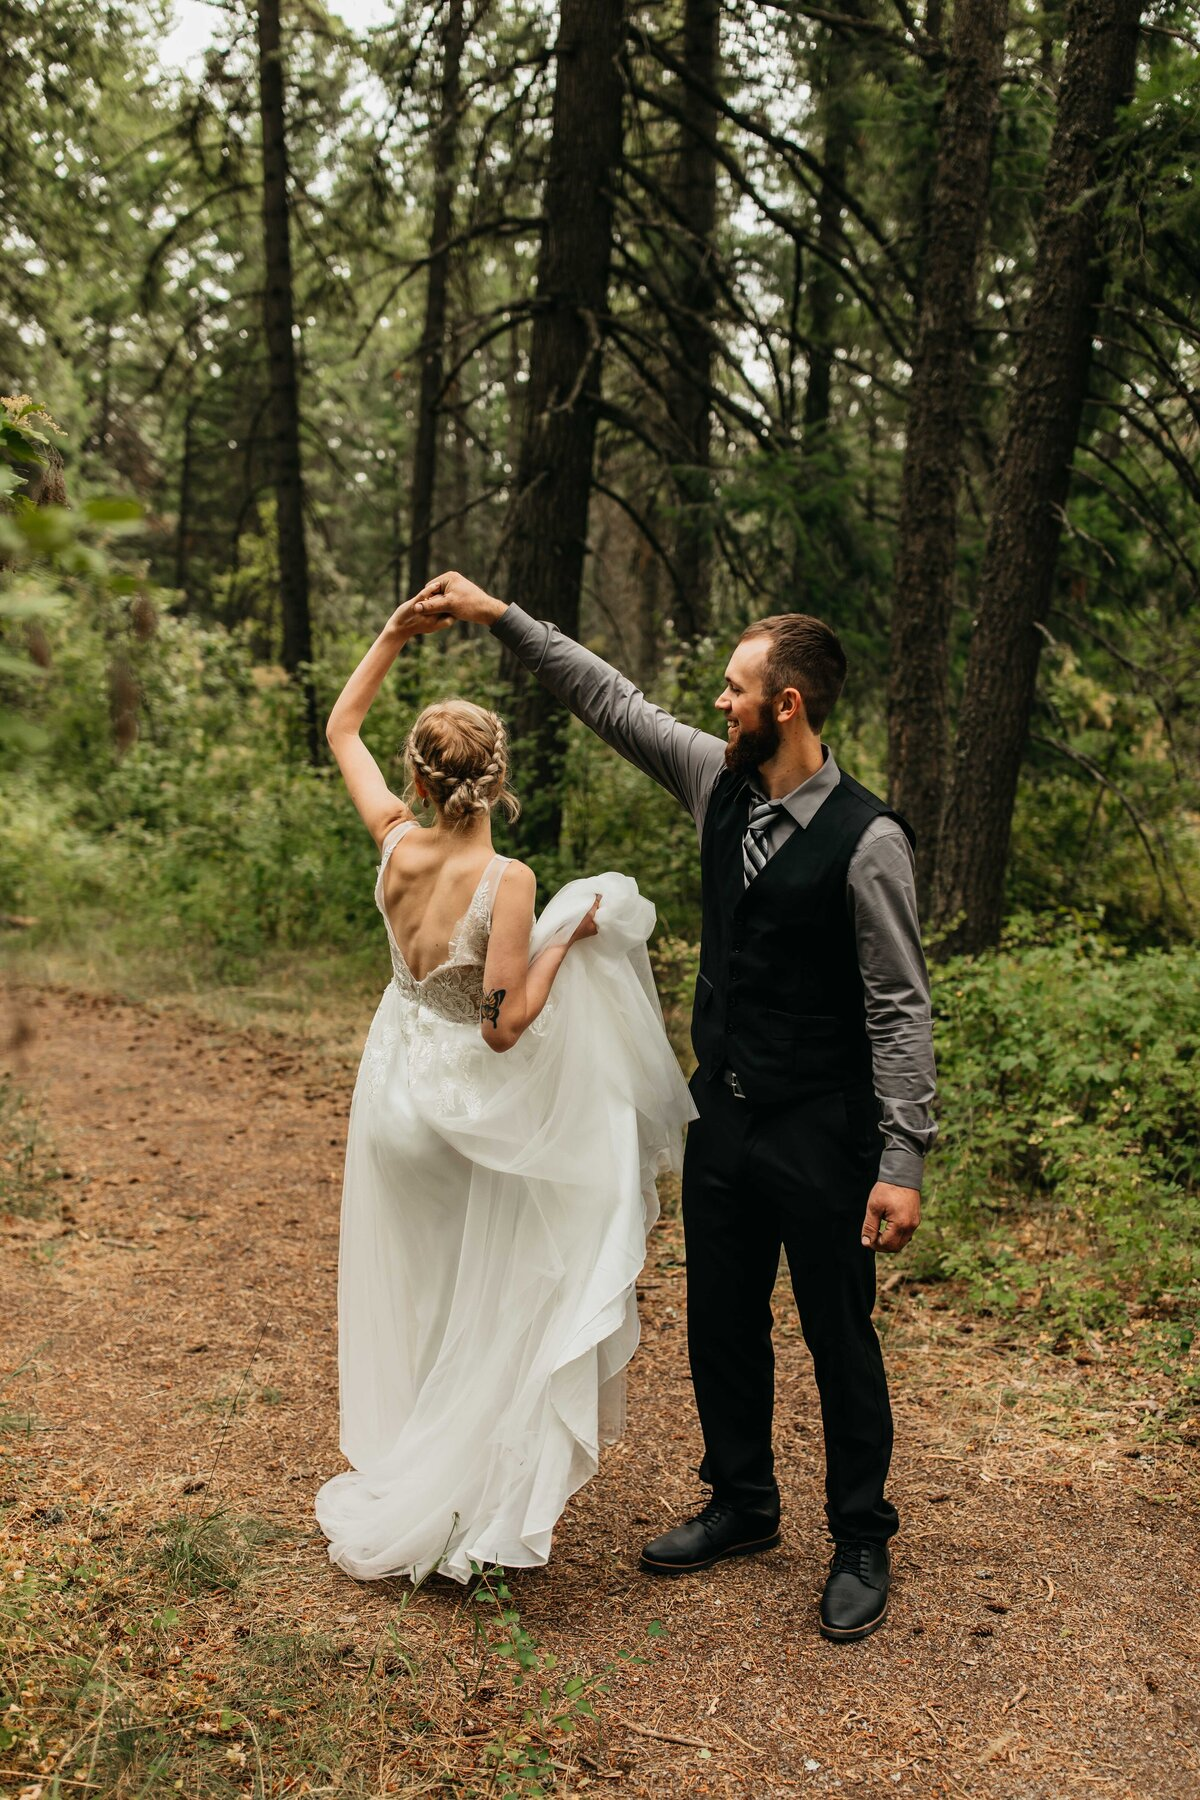 Elopement and Backyard Wedding Photographer in Hayden Idaho, English Point Elopement - Clara Jay Photo_-7